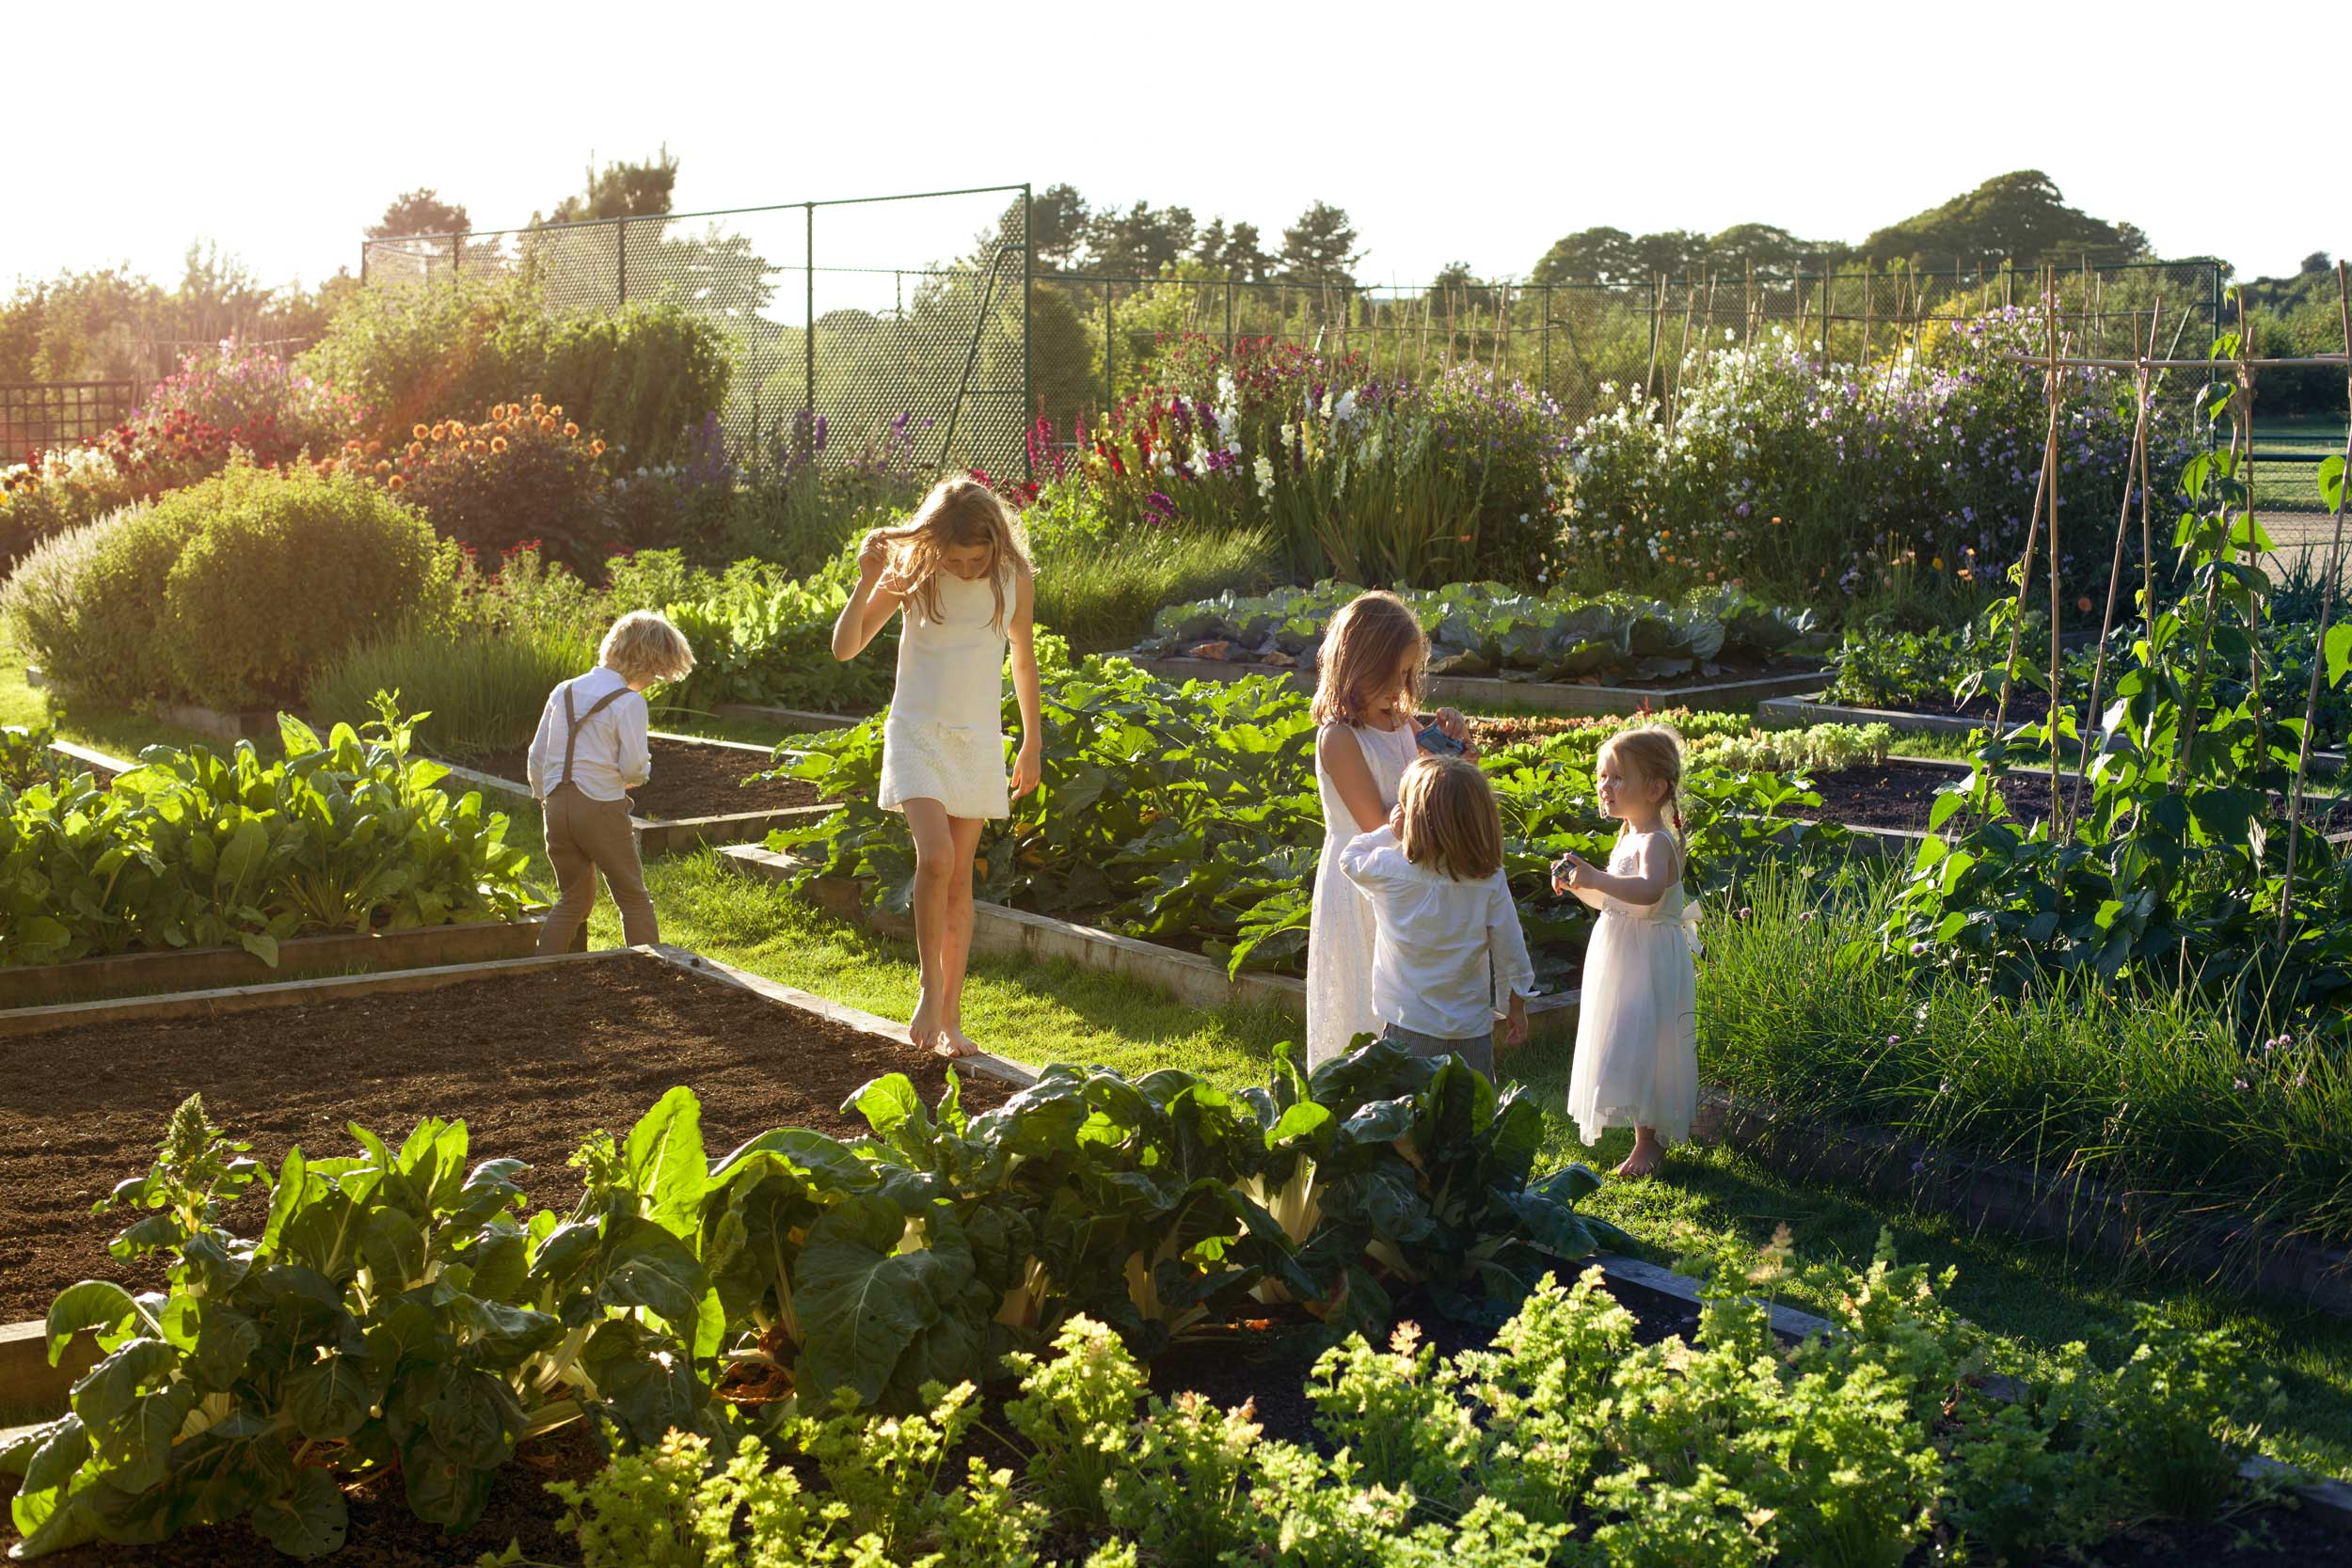 PERSONAL-KIDS-IN-ALLOTMENT